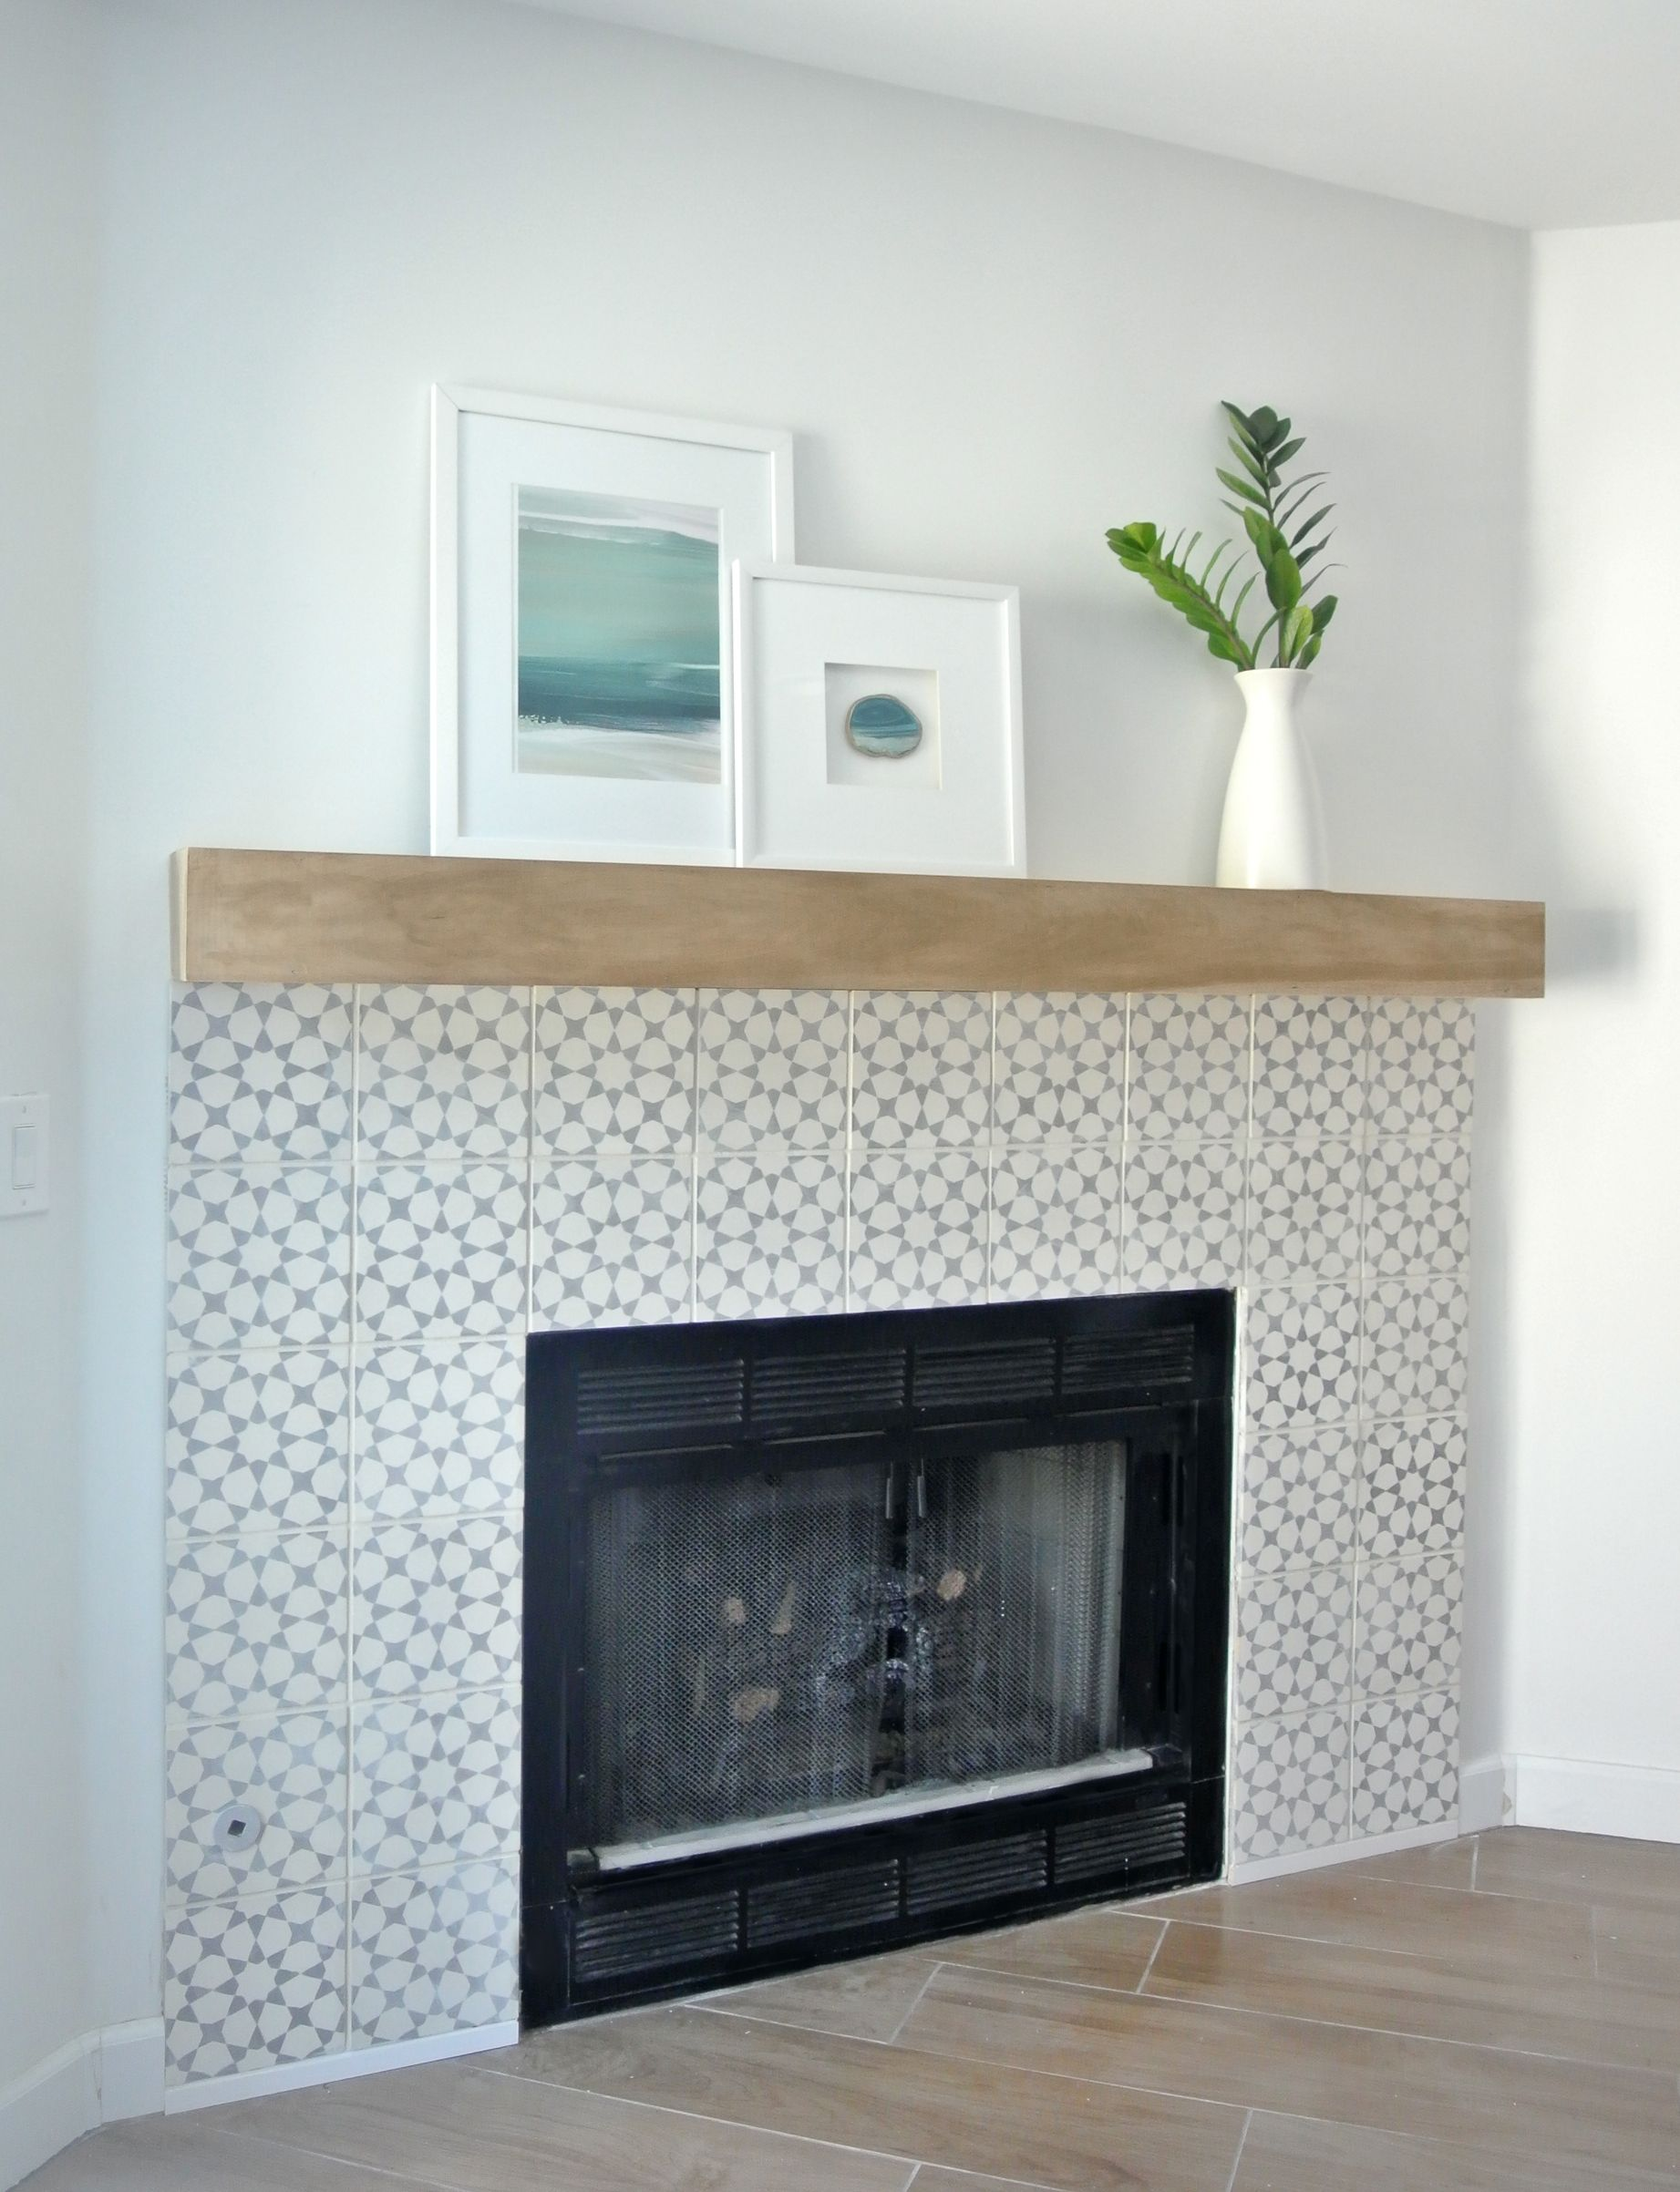 and ideas plus veneer tile for warm fireplace decorations surrounds cozy surround natural images stone